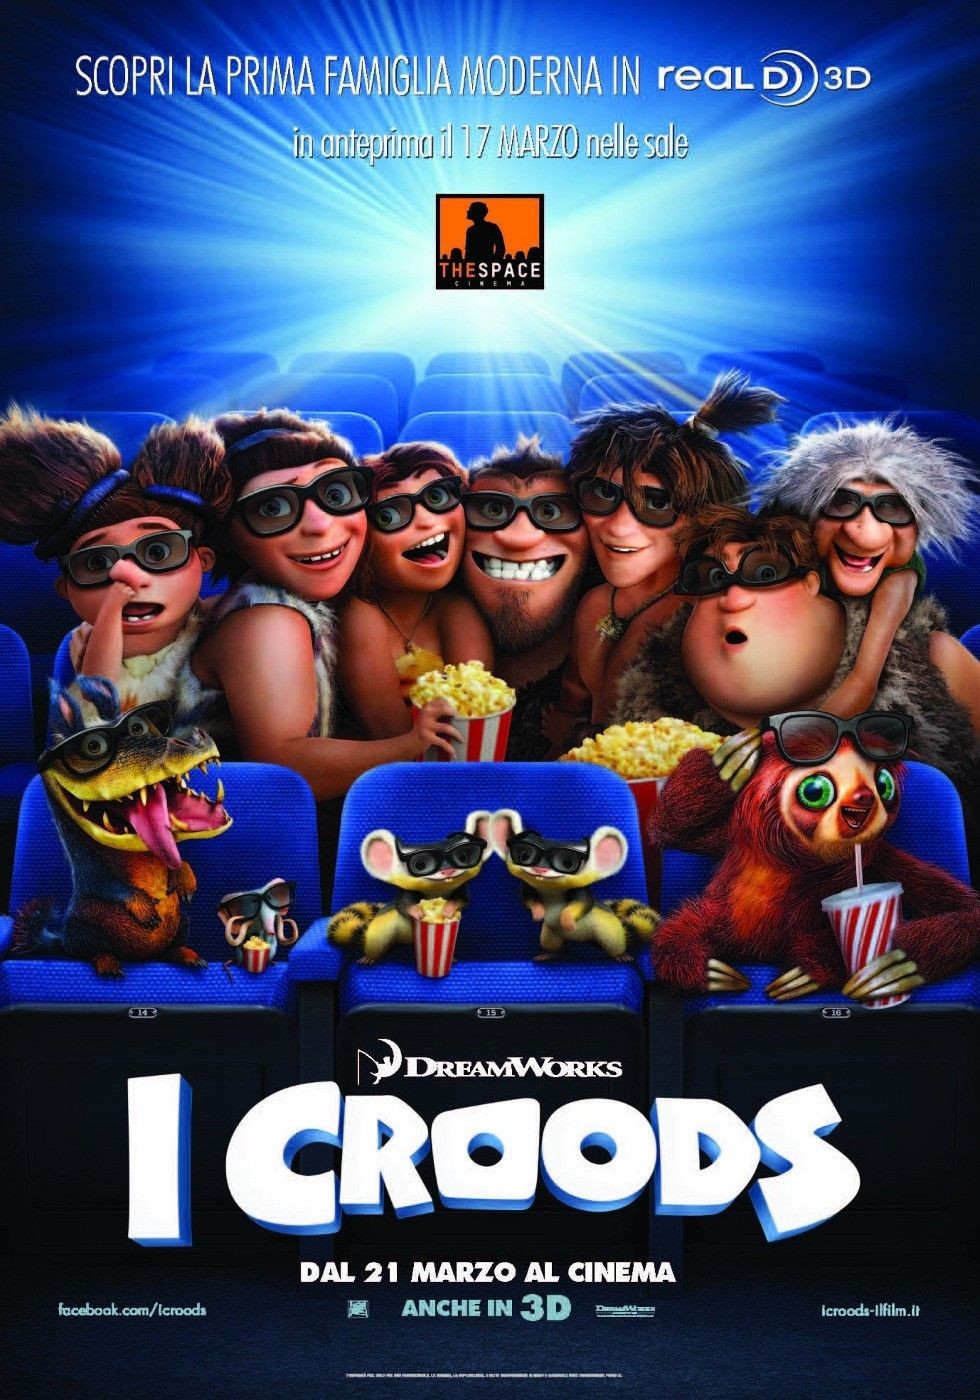 the croods hit the movies in poster 15 for the animated adventure